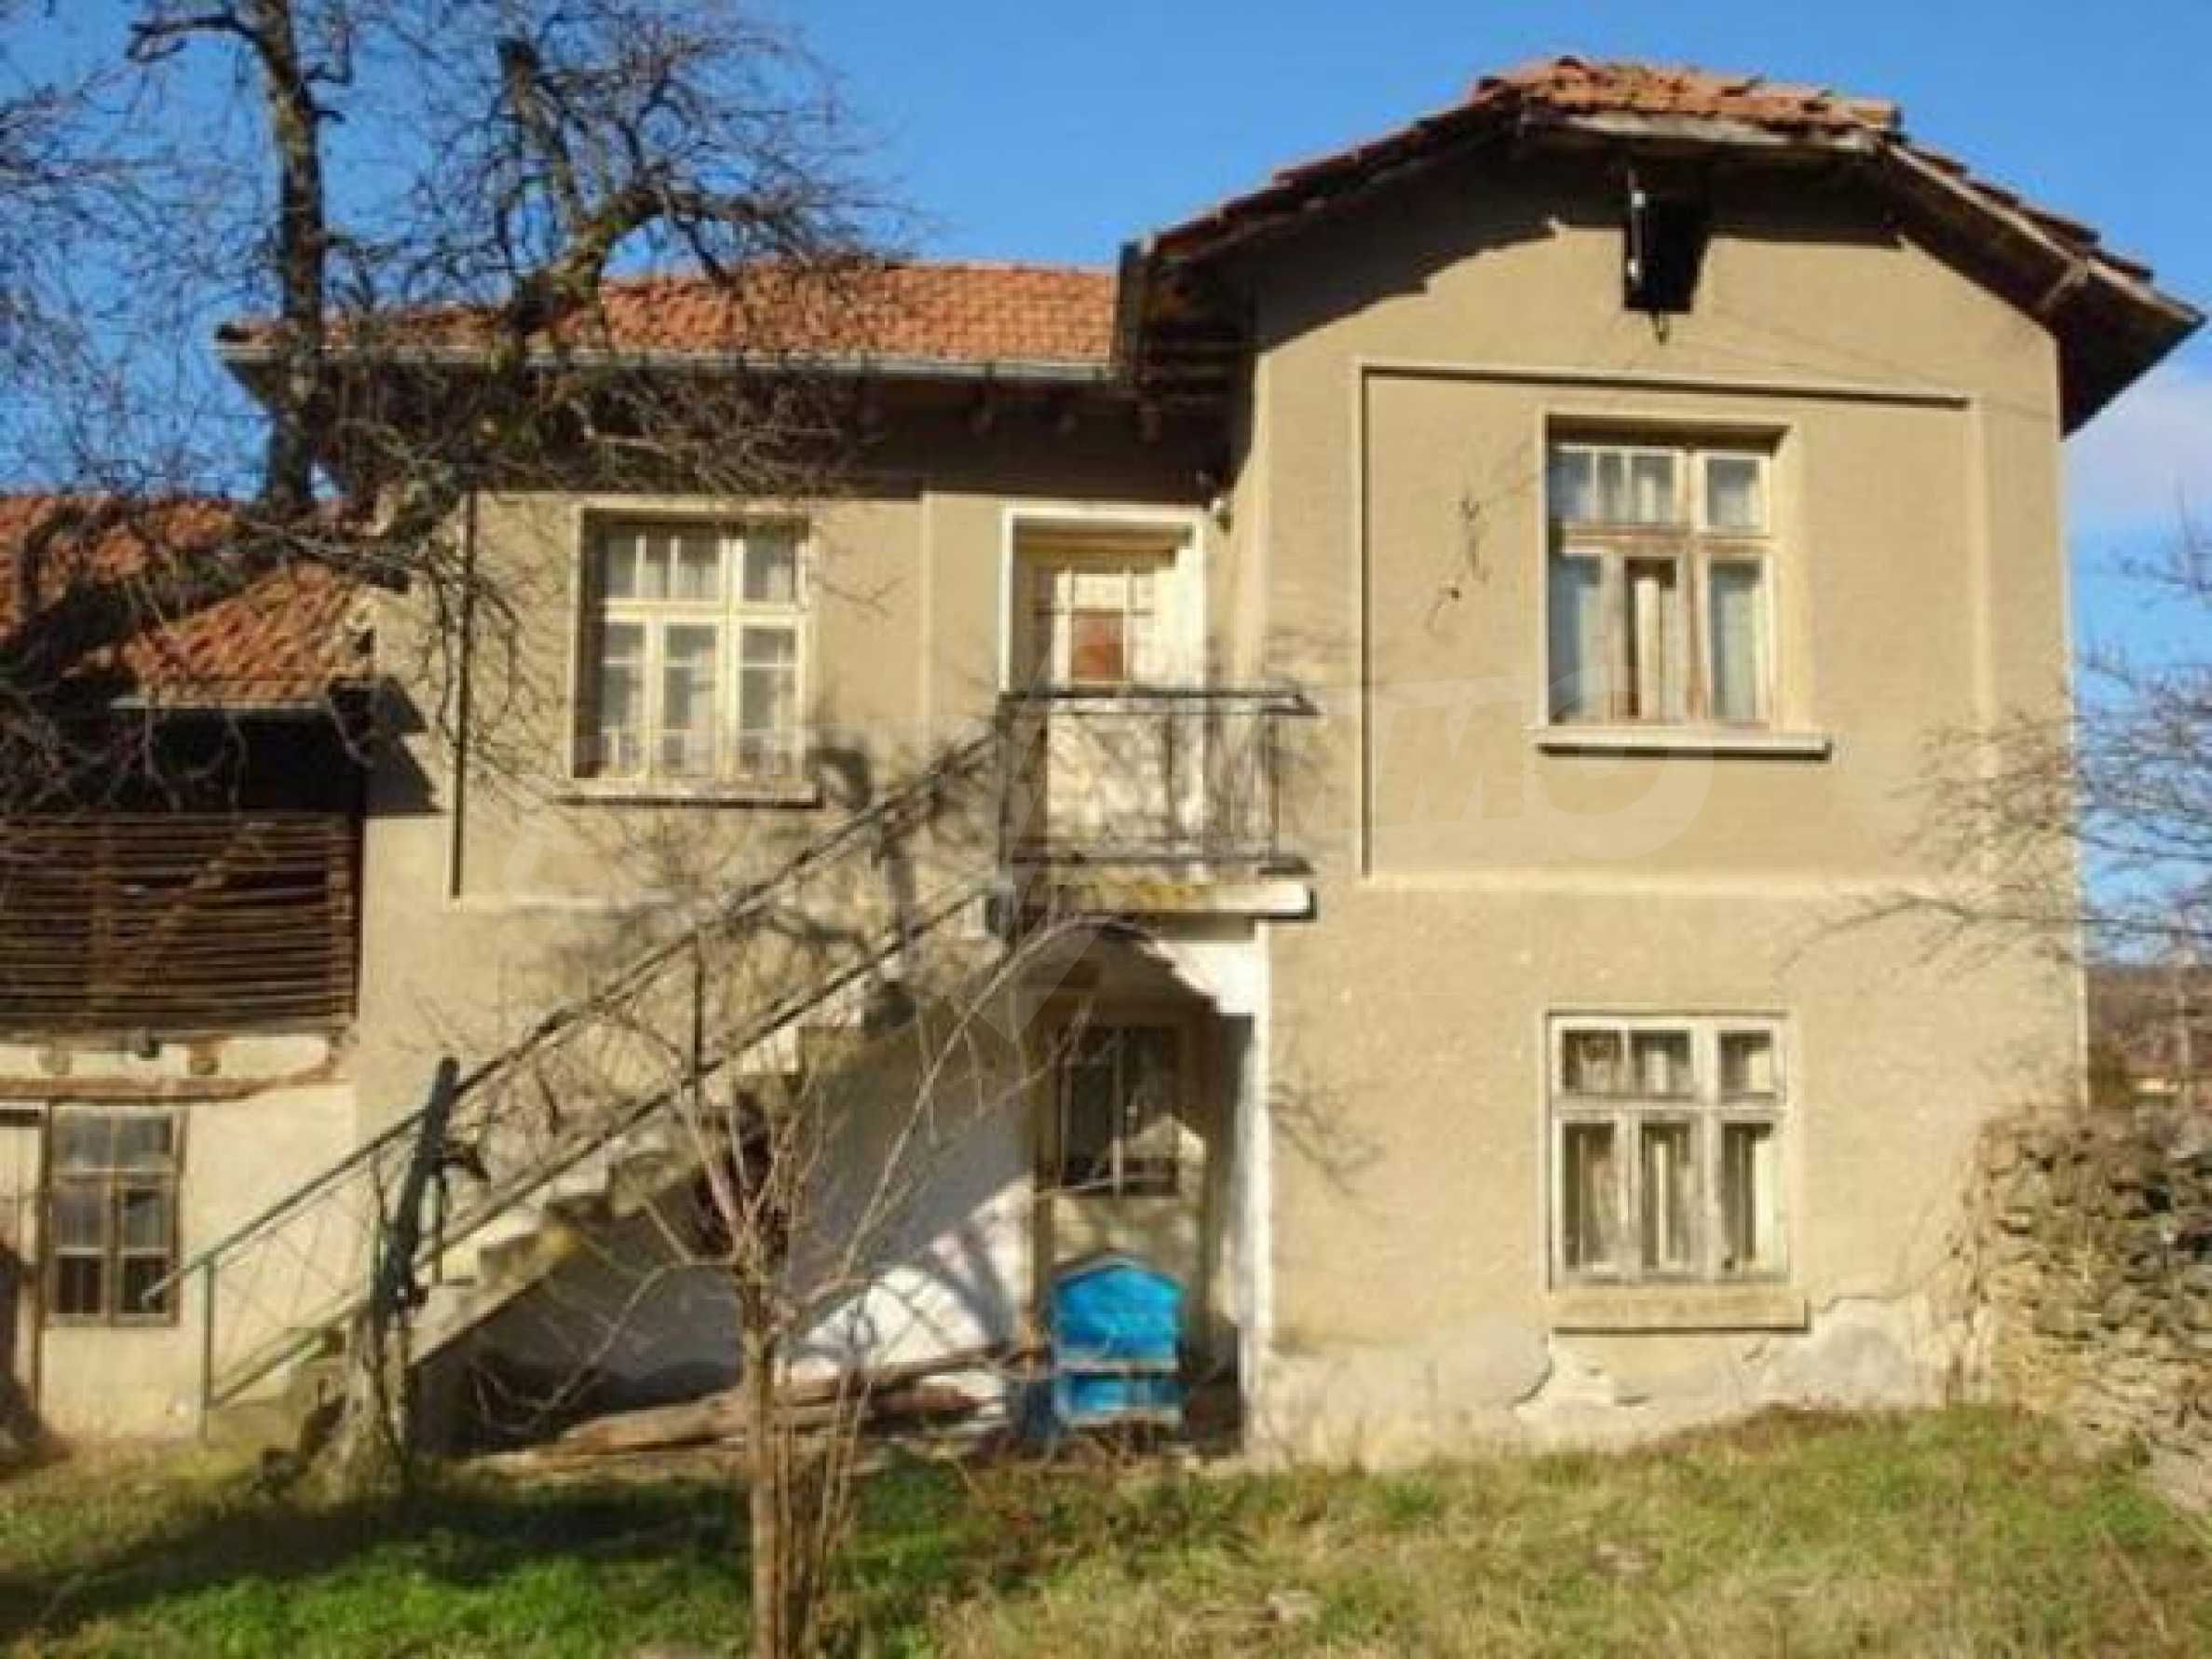 Two-storey house in the village of Dobromirka